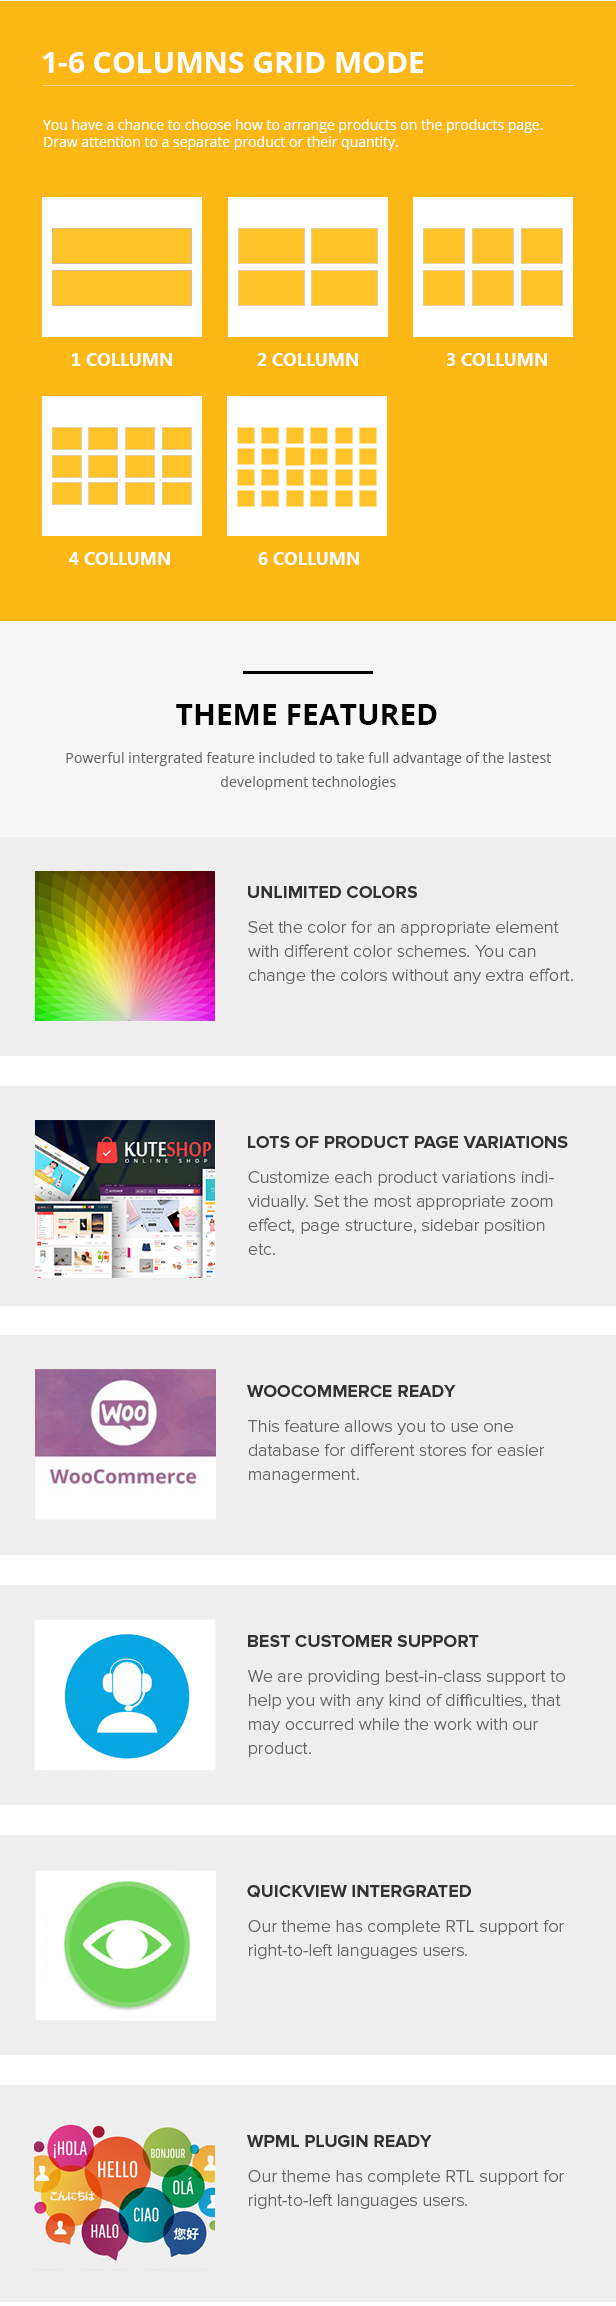 KuteShop -  Super Market Responsive WooComerce WordPress Theme - 6